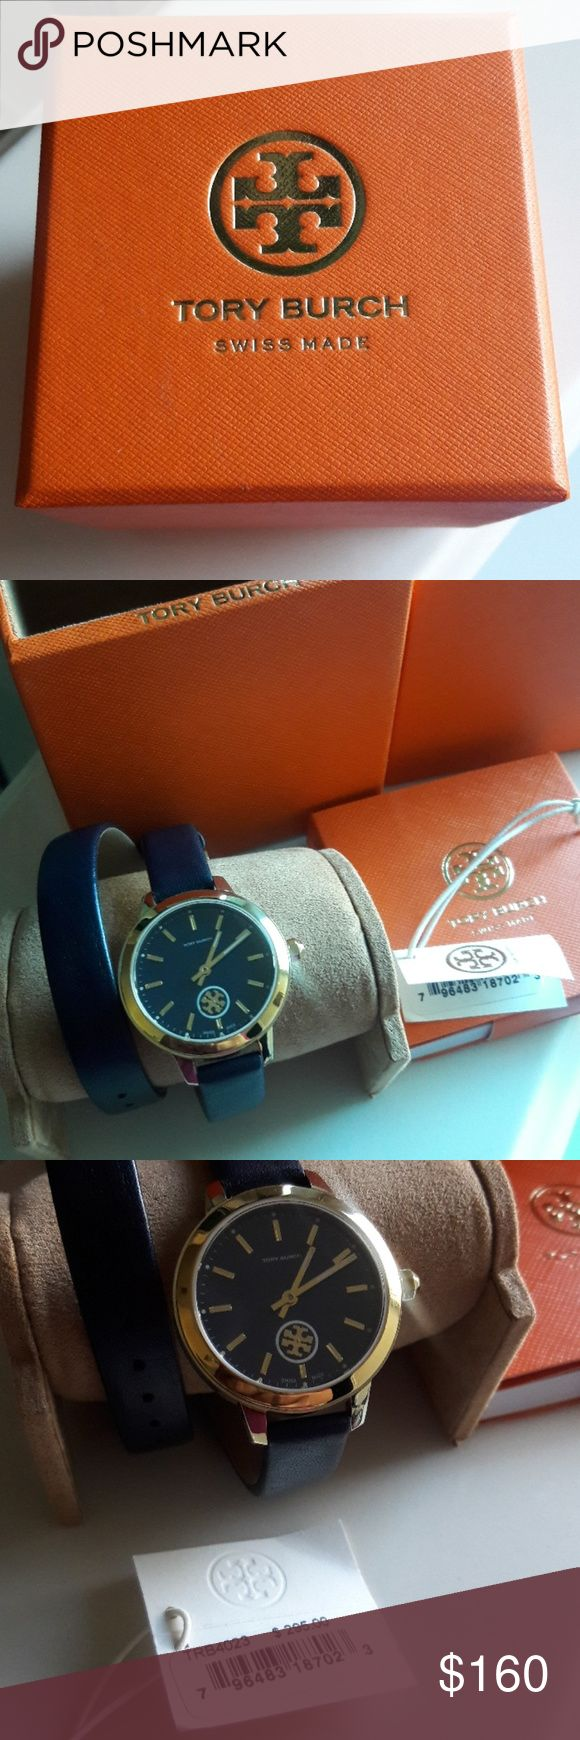 Tory Burch watch 💯authentic !!! Collins Navy Blue Dial Double Wrap Ladies Watch new never use with tag,comes with box . Tory Burch Accessories Watches